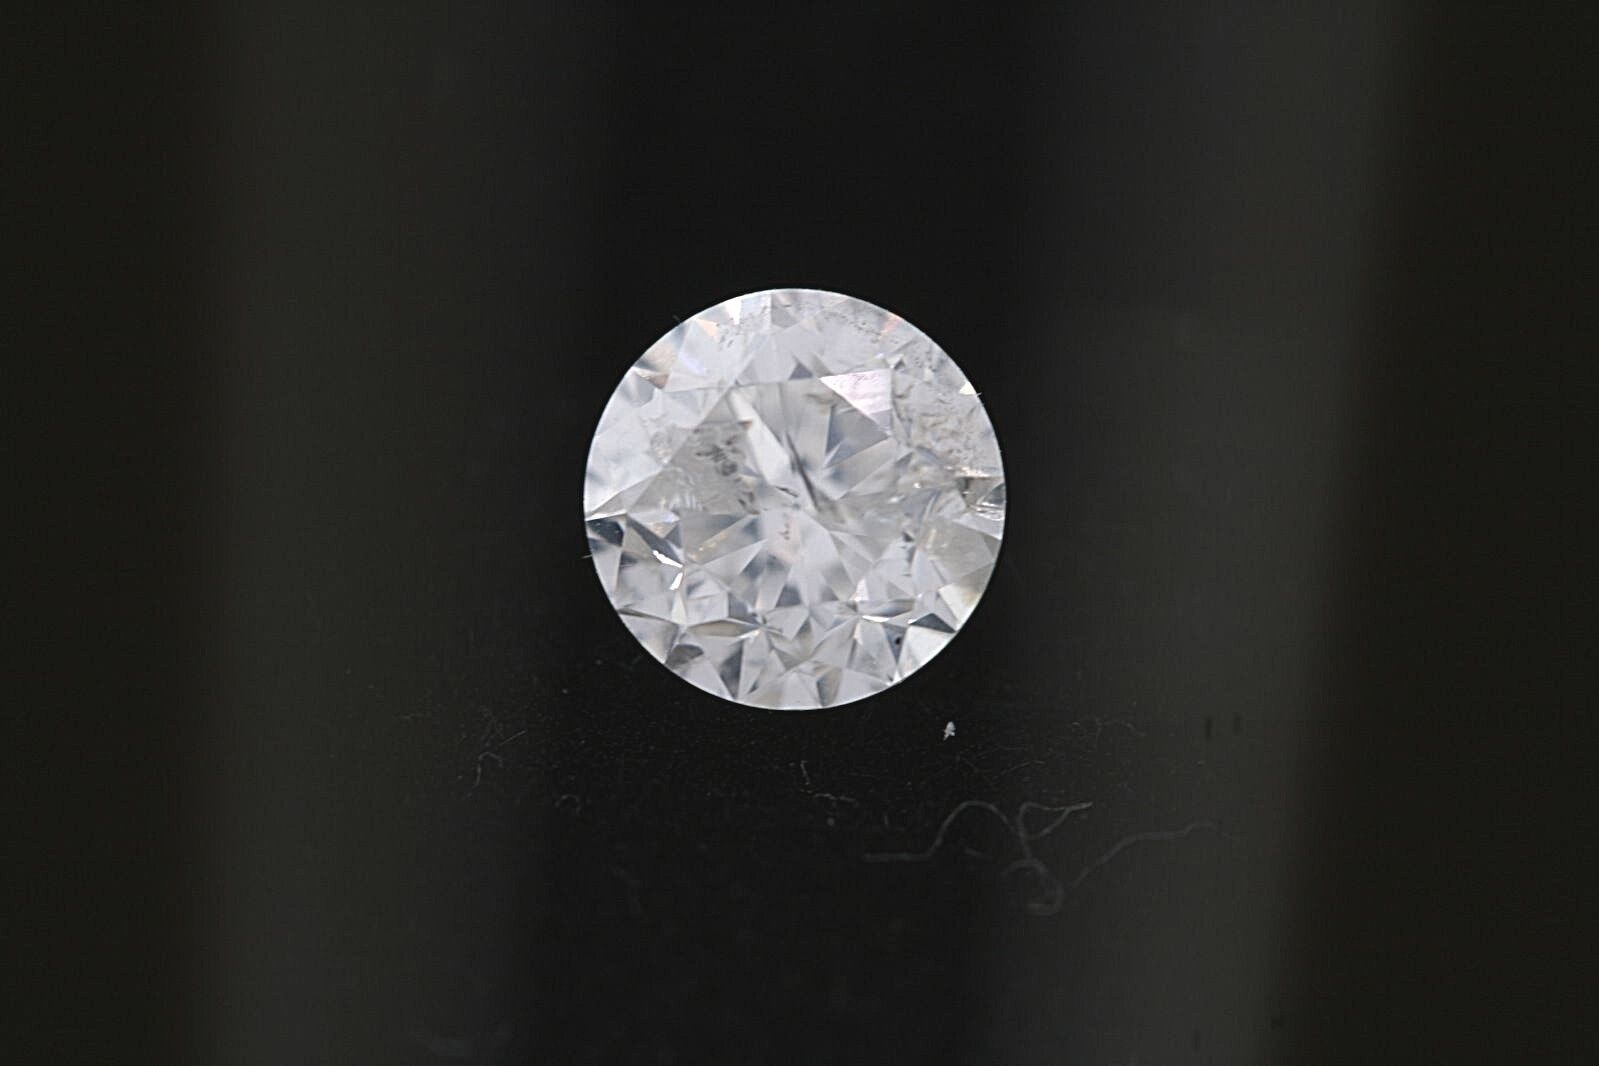 GIA .77ct Round Loose Diamond H color, I2 clarity 5.56-5.59 x 3.79mm